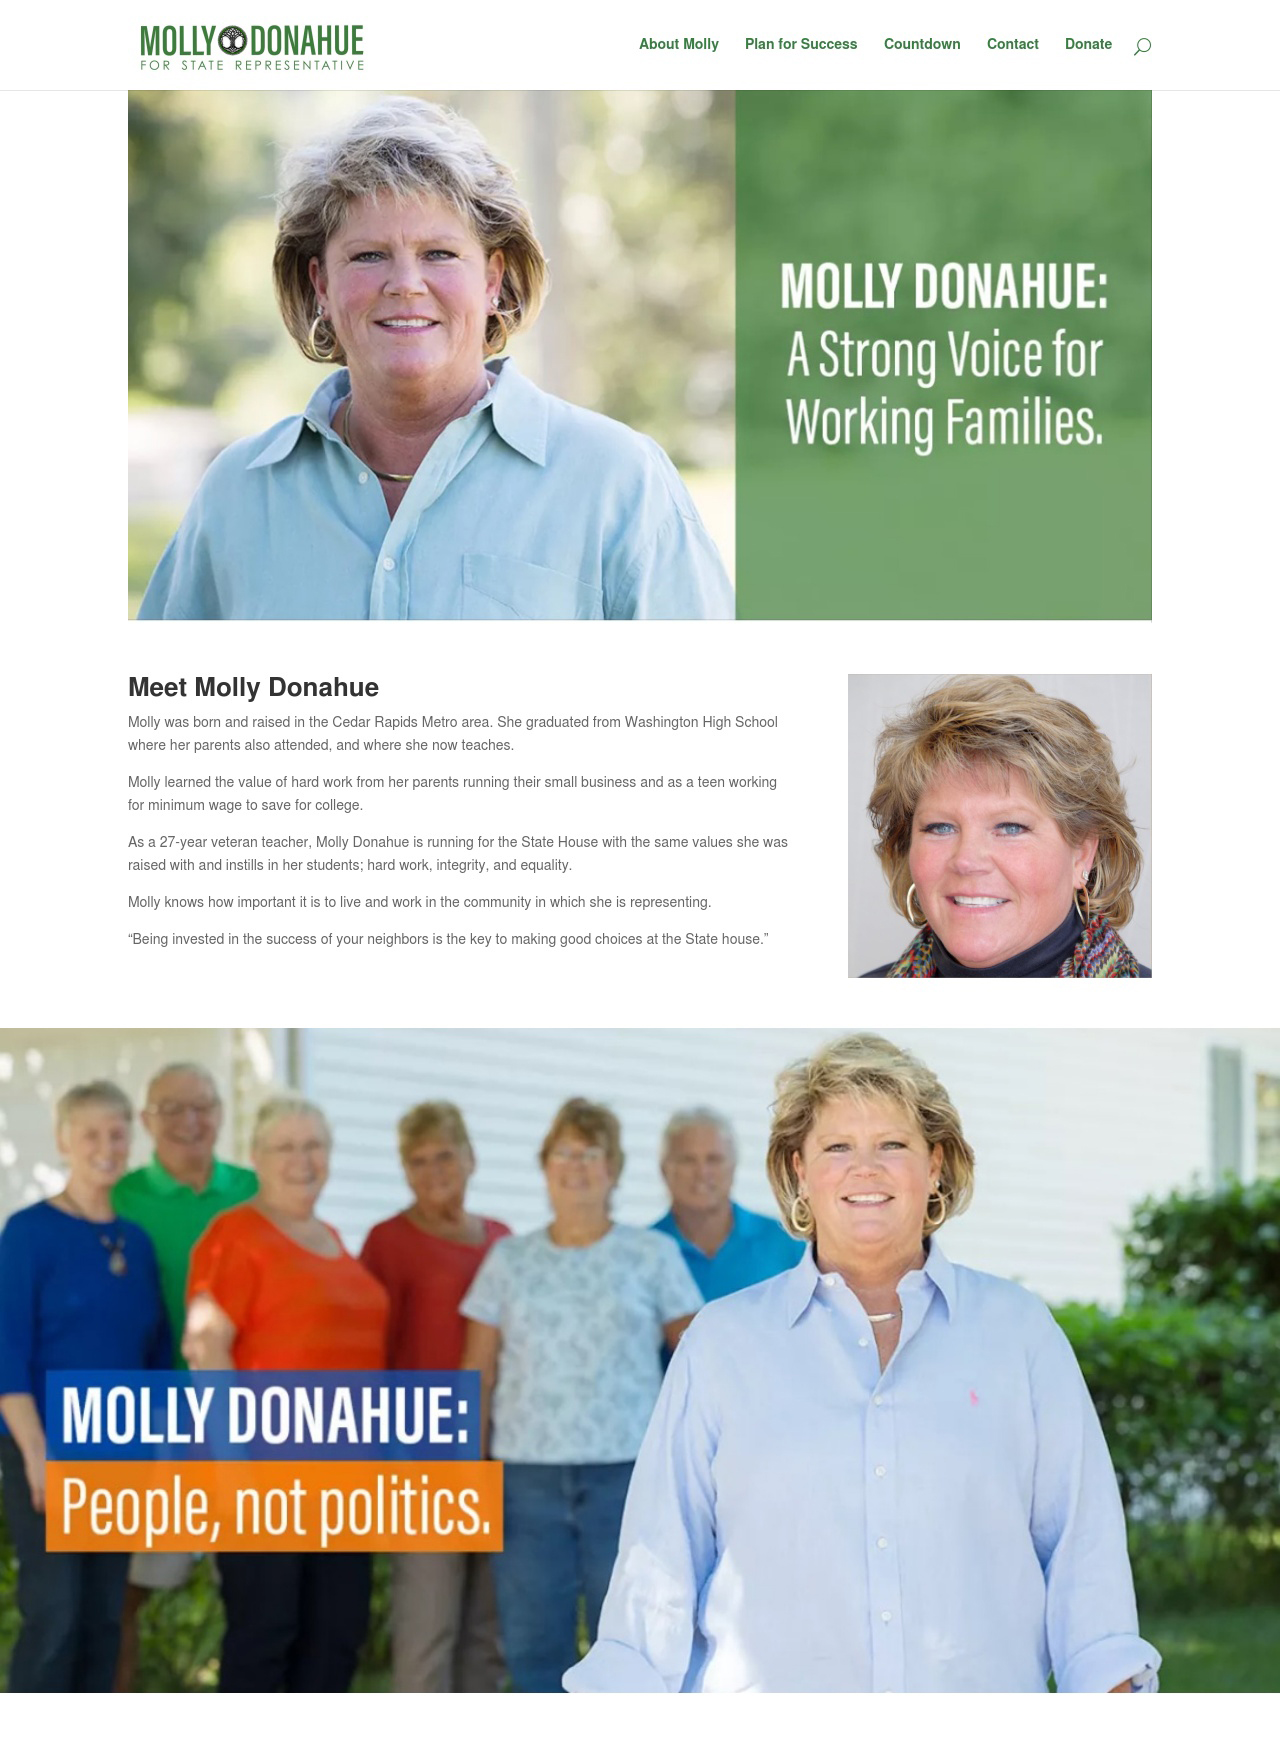 Image of the home page of a site for a House Representative Candidate for the Iowa House